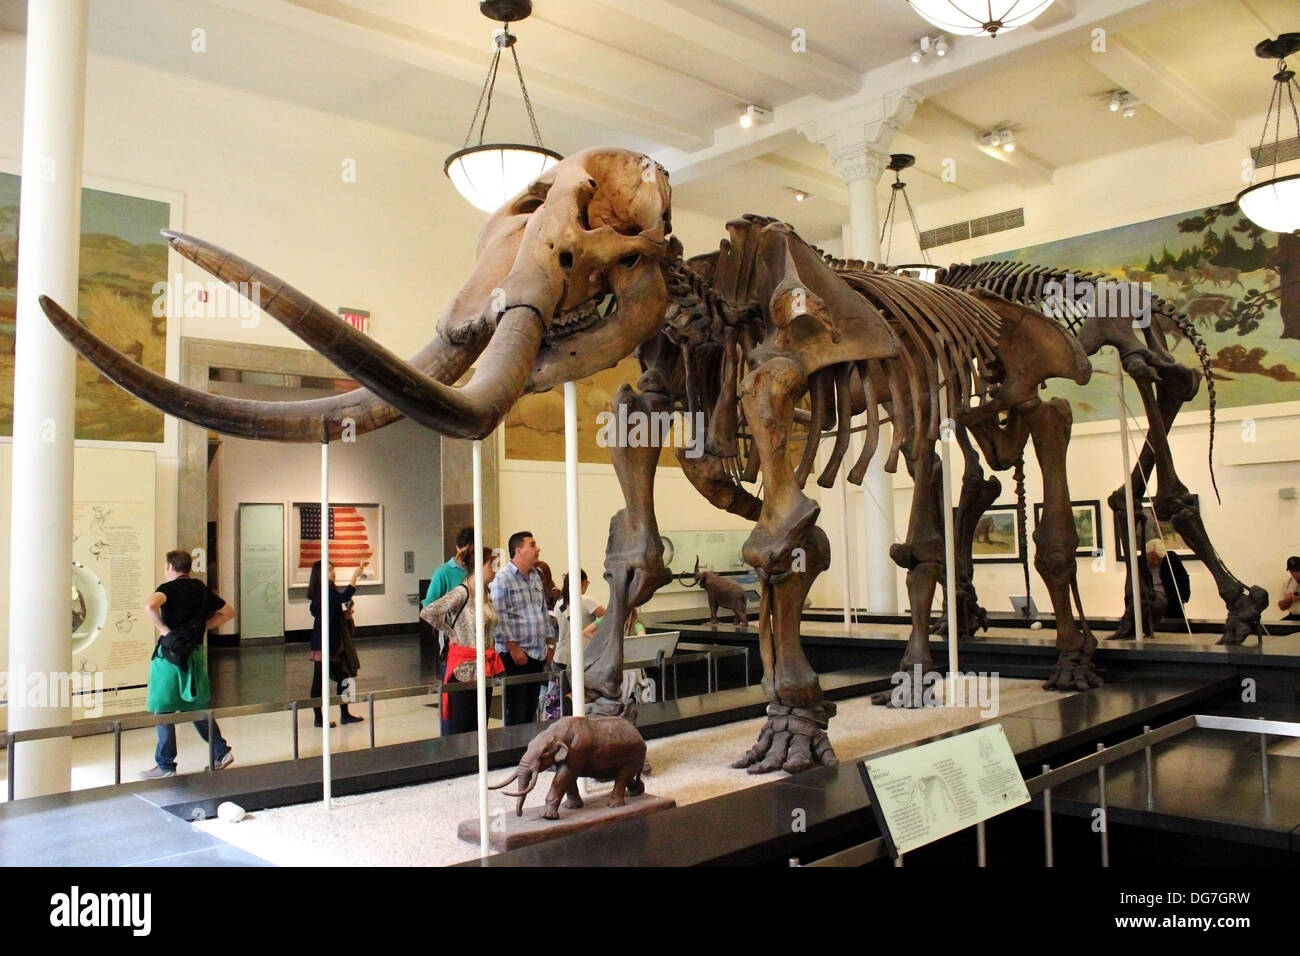 The assembled fossilized remains of a Mastodon is displayed at the American Museum of Natural History in New York City. - Stock Image